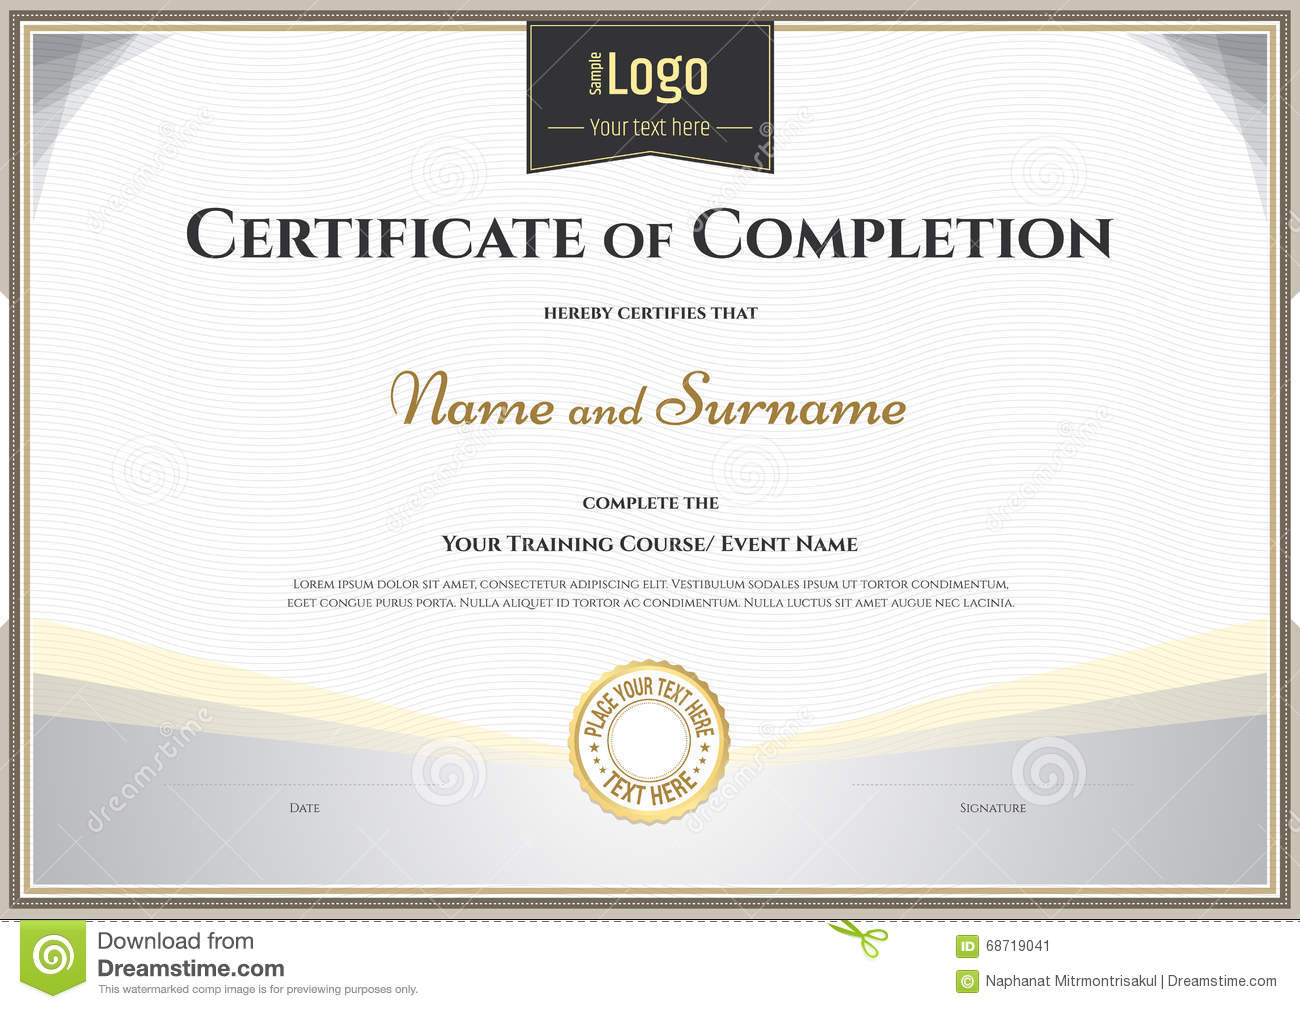 Certificate Of Completion Template In Vector For Achievement Gra – Template Certificate of Completion